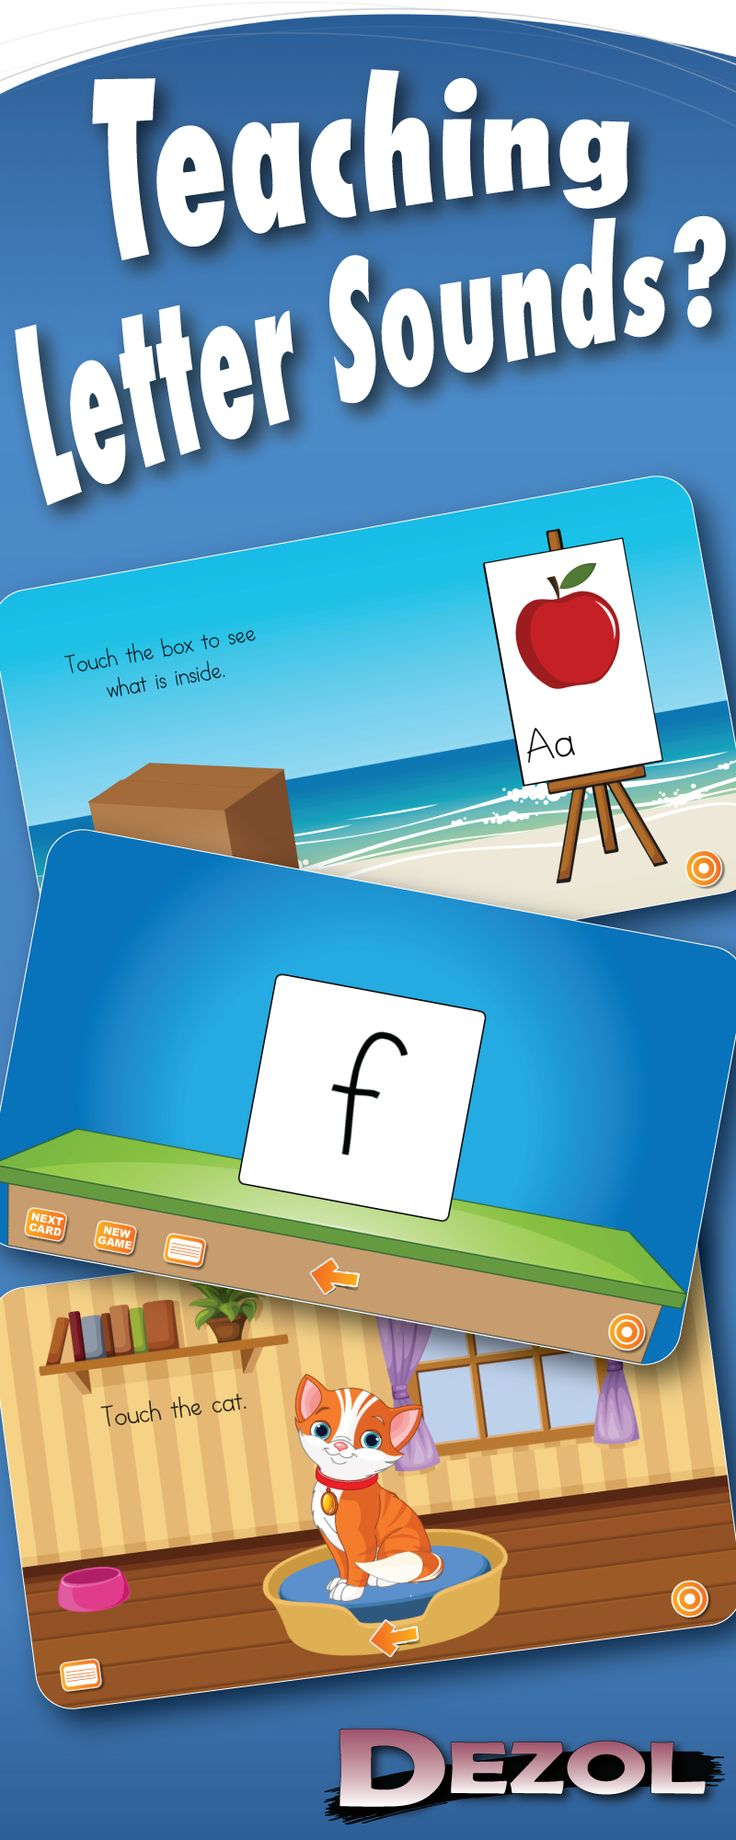 Dezol has games to learn the the alphabet, letter sounds, sight words, and many other skills essential to reading. You can use Dezol on your student workstations or your interactive whiteboard (SMART Board).  With almost a hundred free games to choose from, you are sure to find just what your students need. Are you ready to join the thousands of teachers already using Dezol?